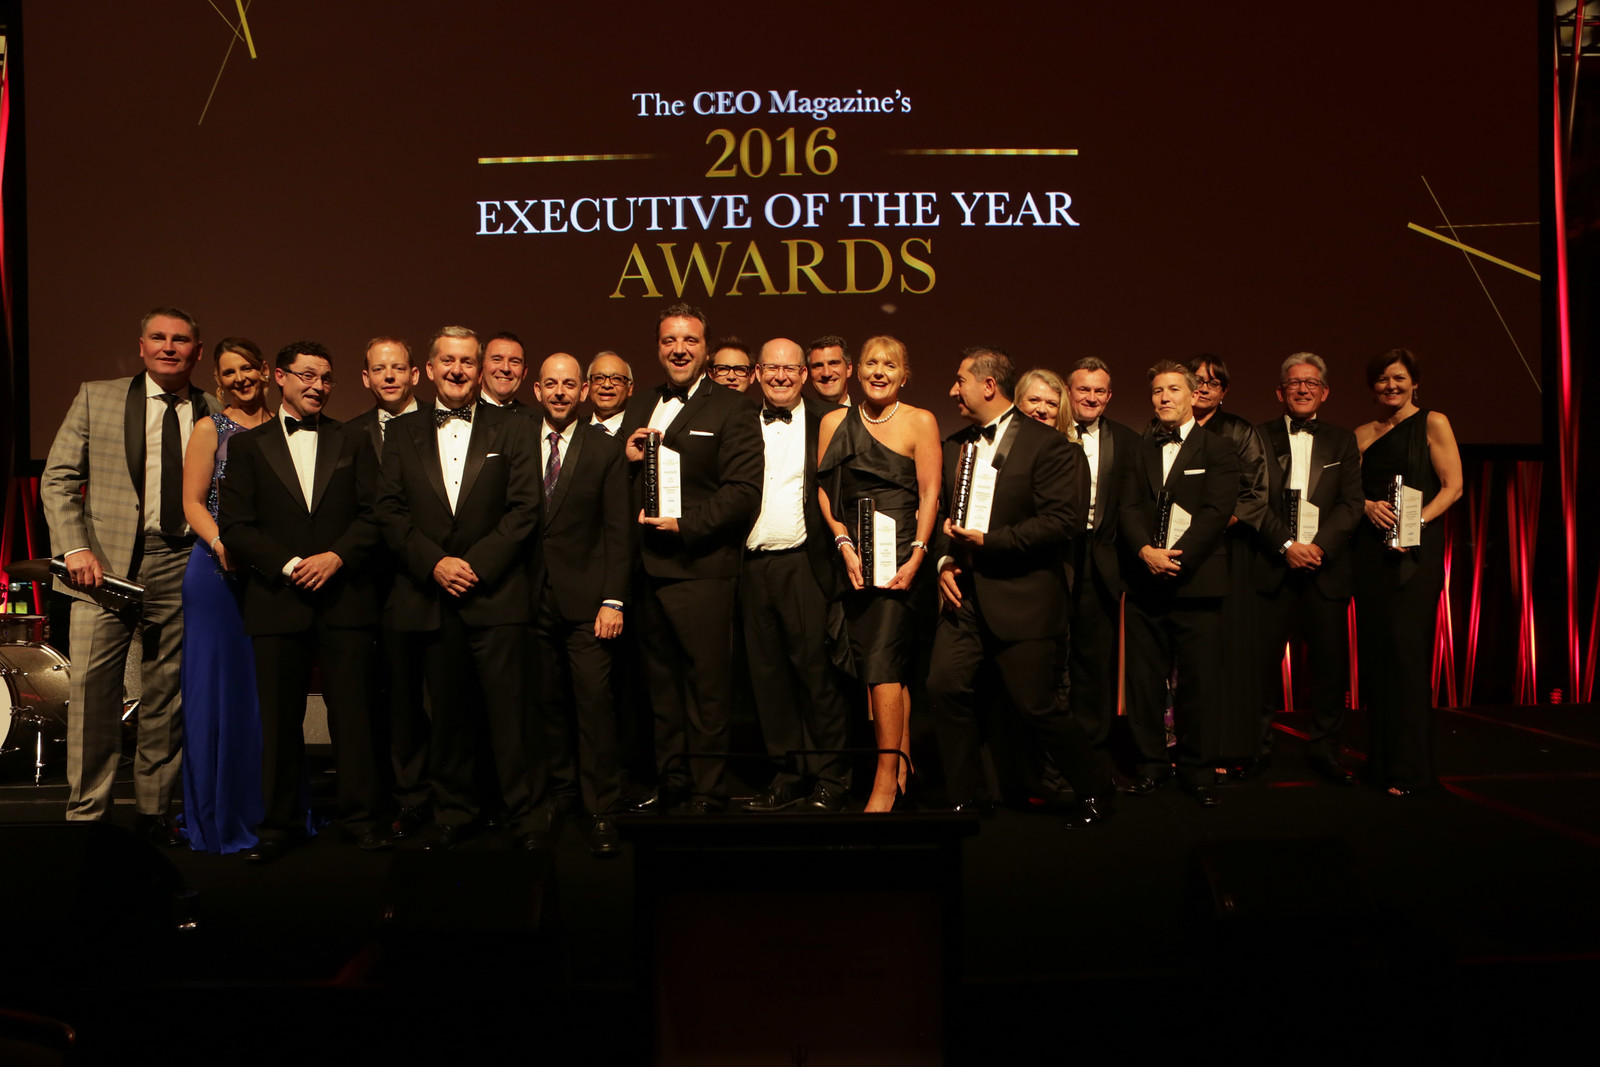 2016 Executive of the Year Awards Winners